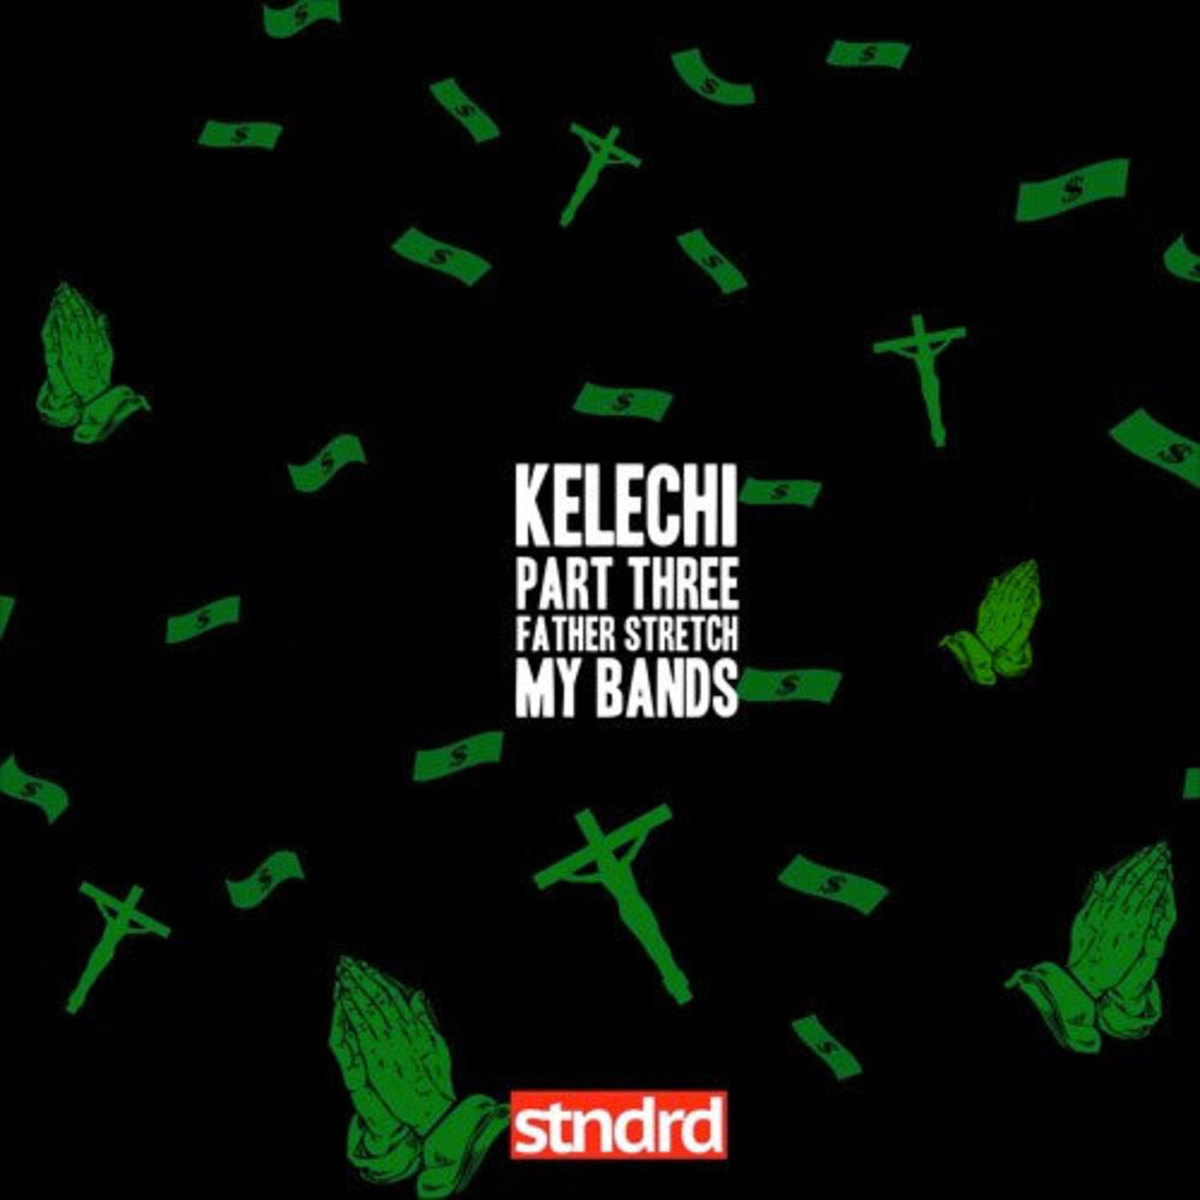 kelechi-part-3-father-stretch-my-bands.jpg